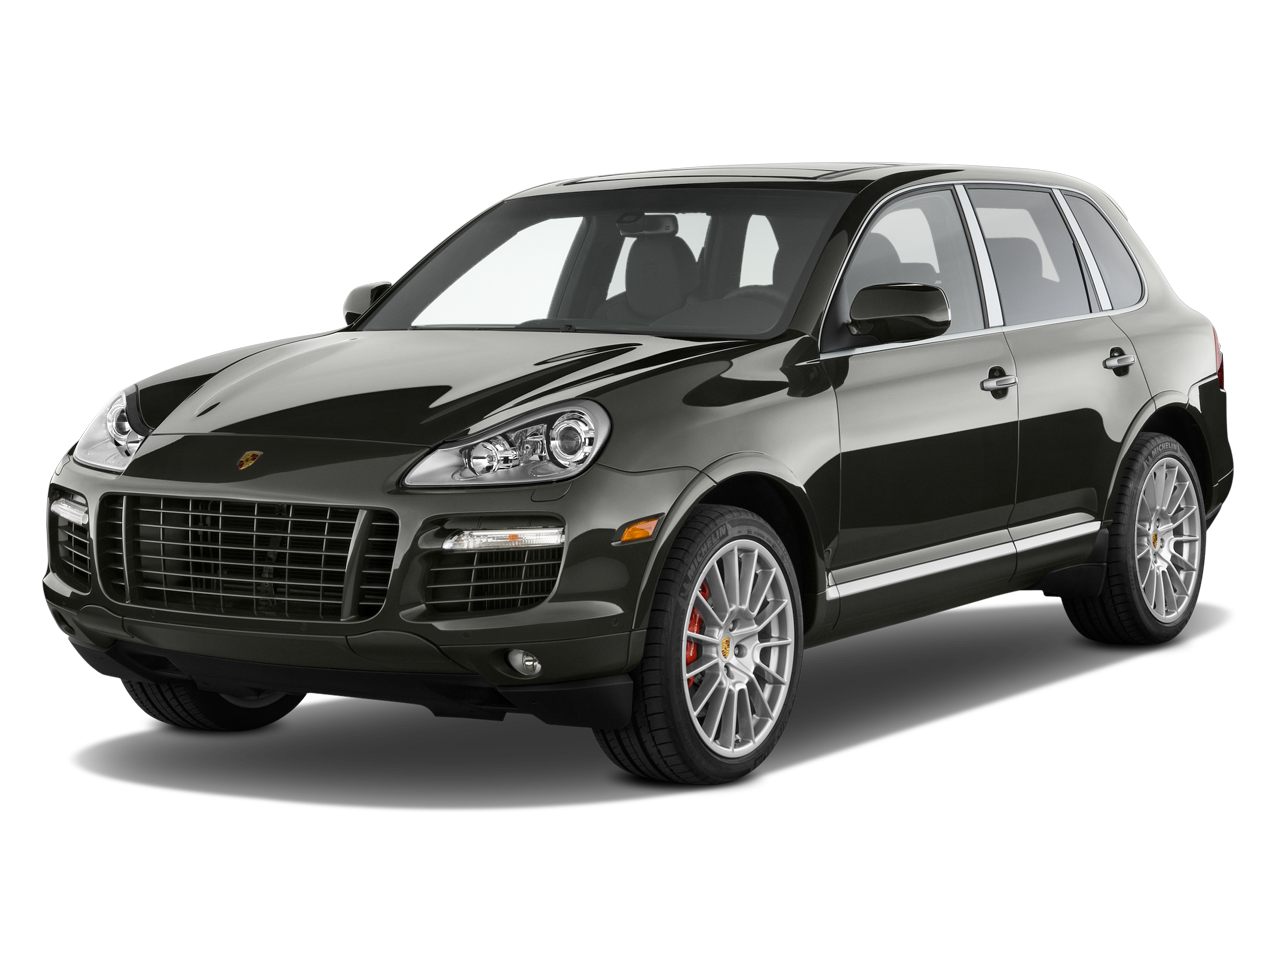 2009 porsche cayenne turbo s porsche luxury crossover. Black Bedroom Furniture Sets. Home Design Ideas